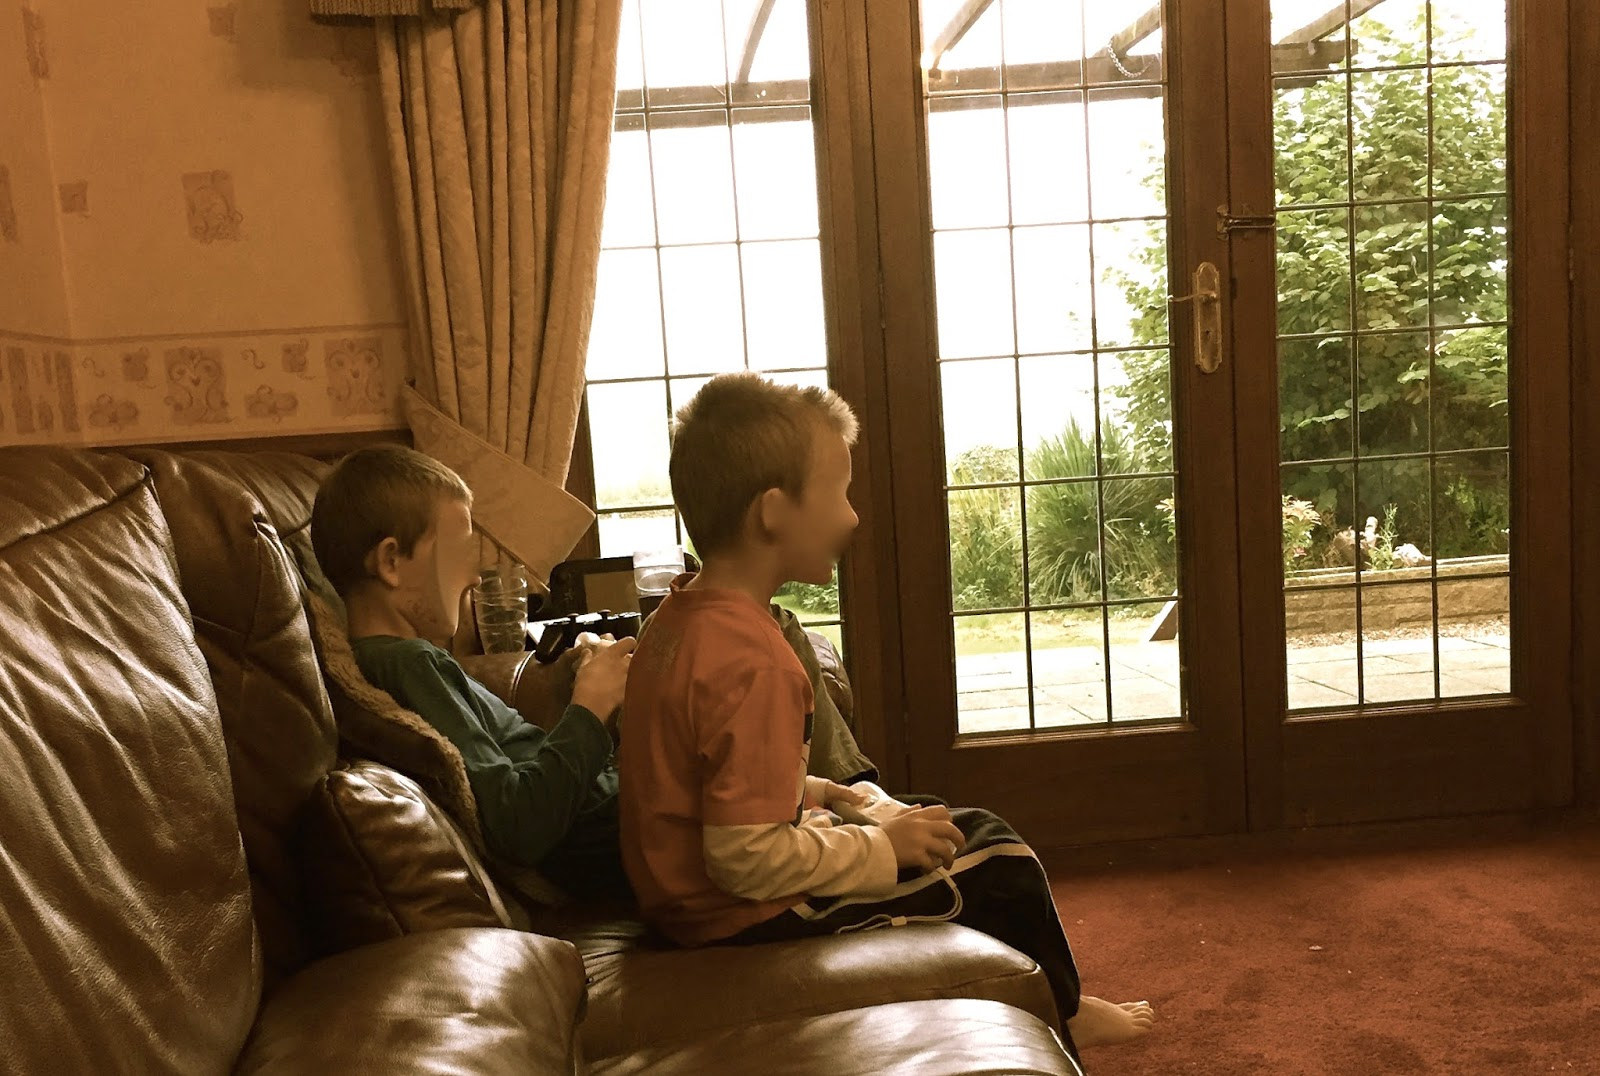 Morgan's Milieu | Forget About Technology: Two boys sat on a brown leather sofa playing games.